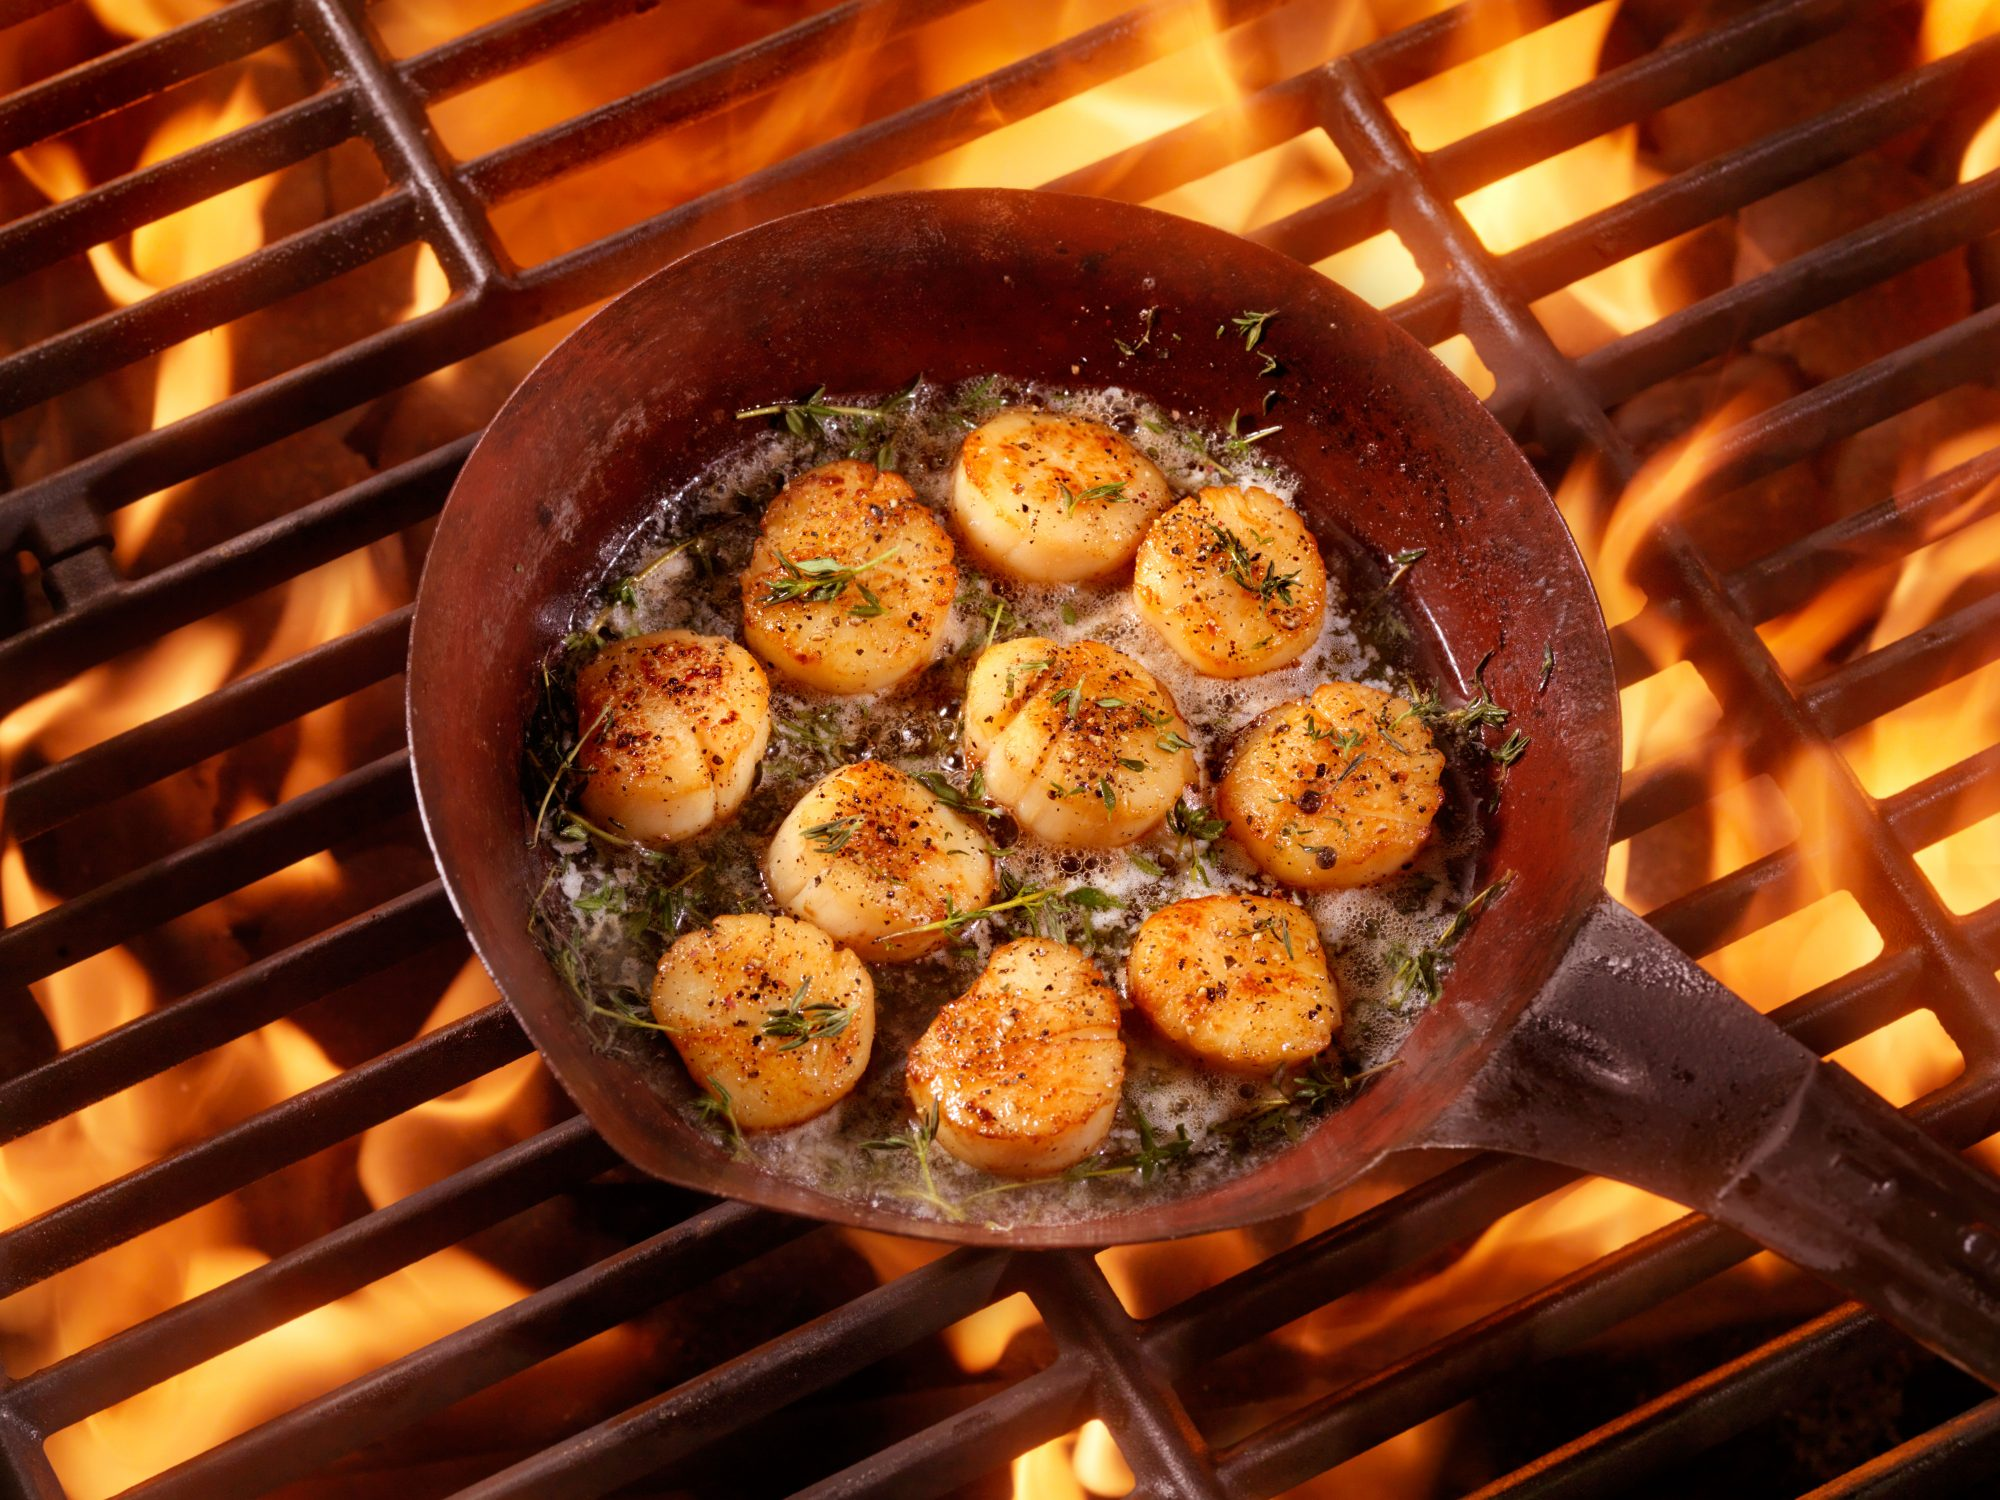 scallops on the grill